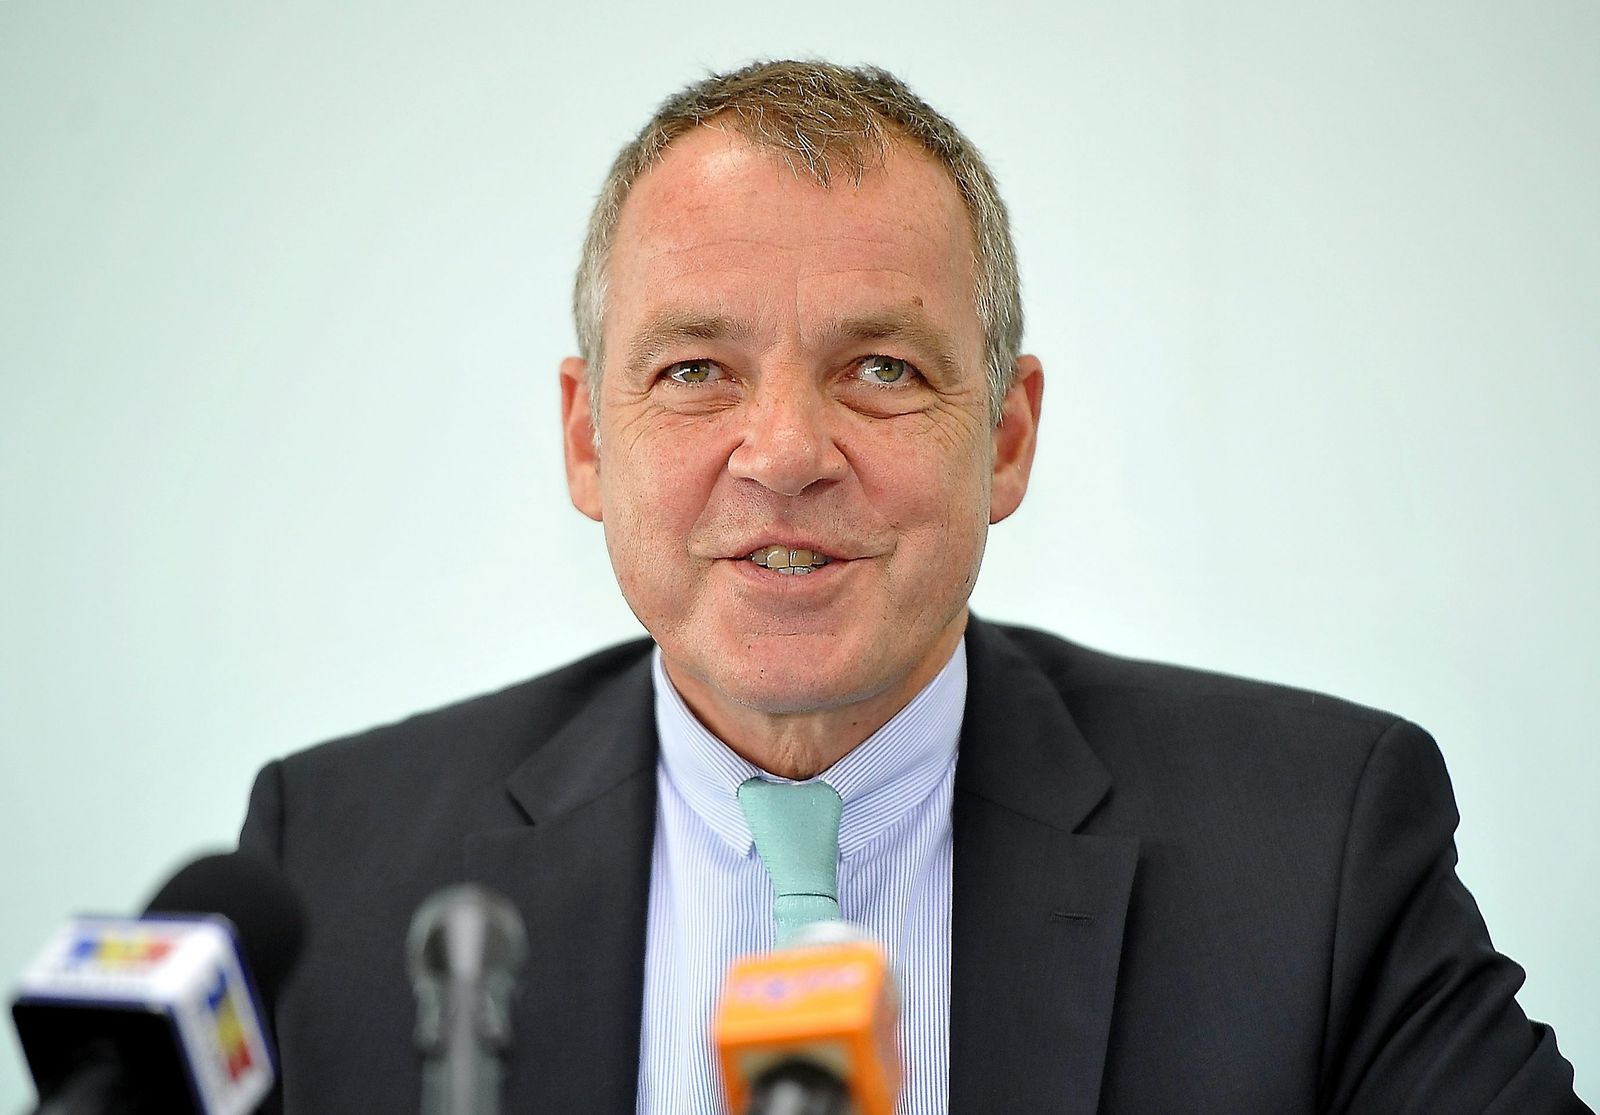 Malaysia Airlines CEO Christoph Müller